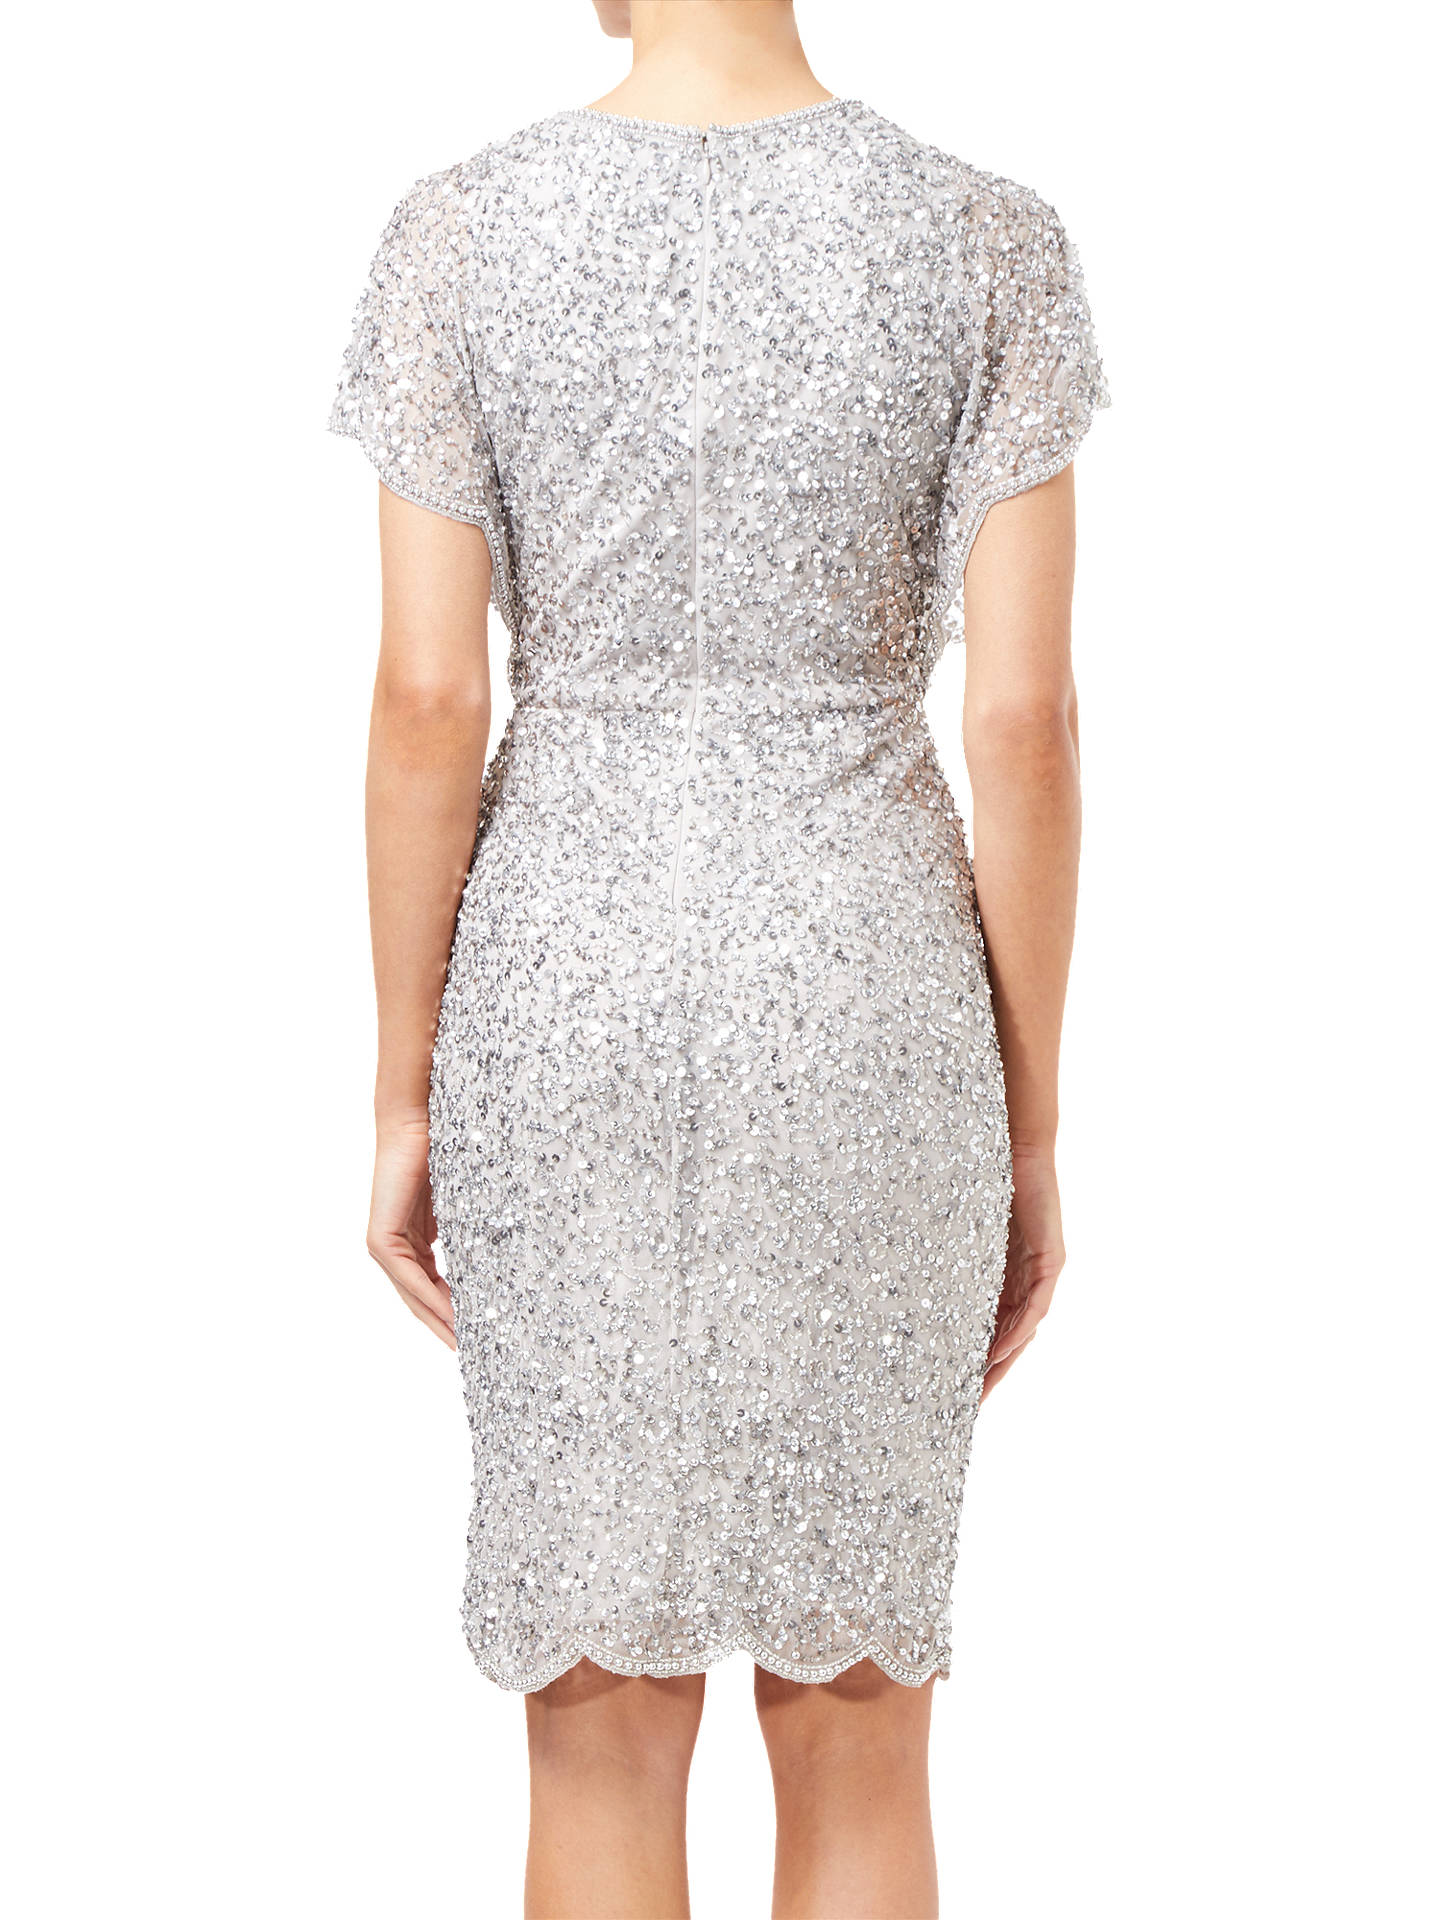 BuyAdrianna Papell Flutter Sleeve Beaded Dress, Silver, 10 Online at johnlewis.com